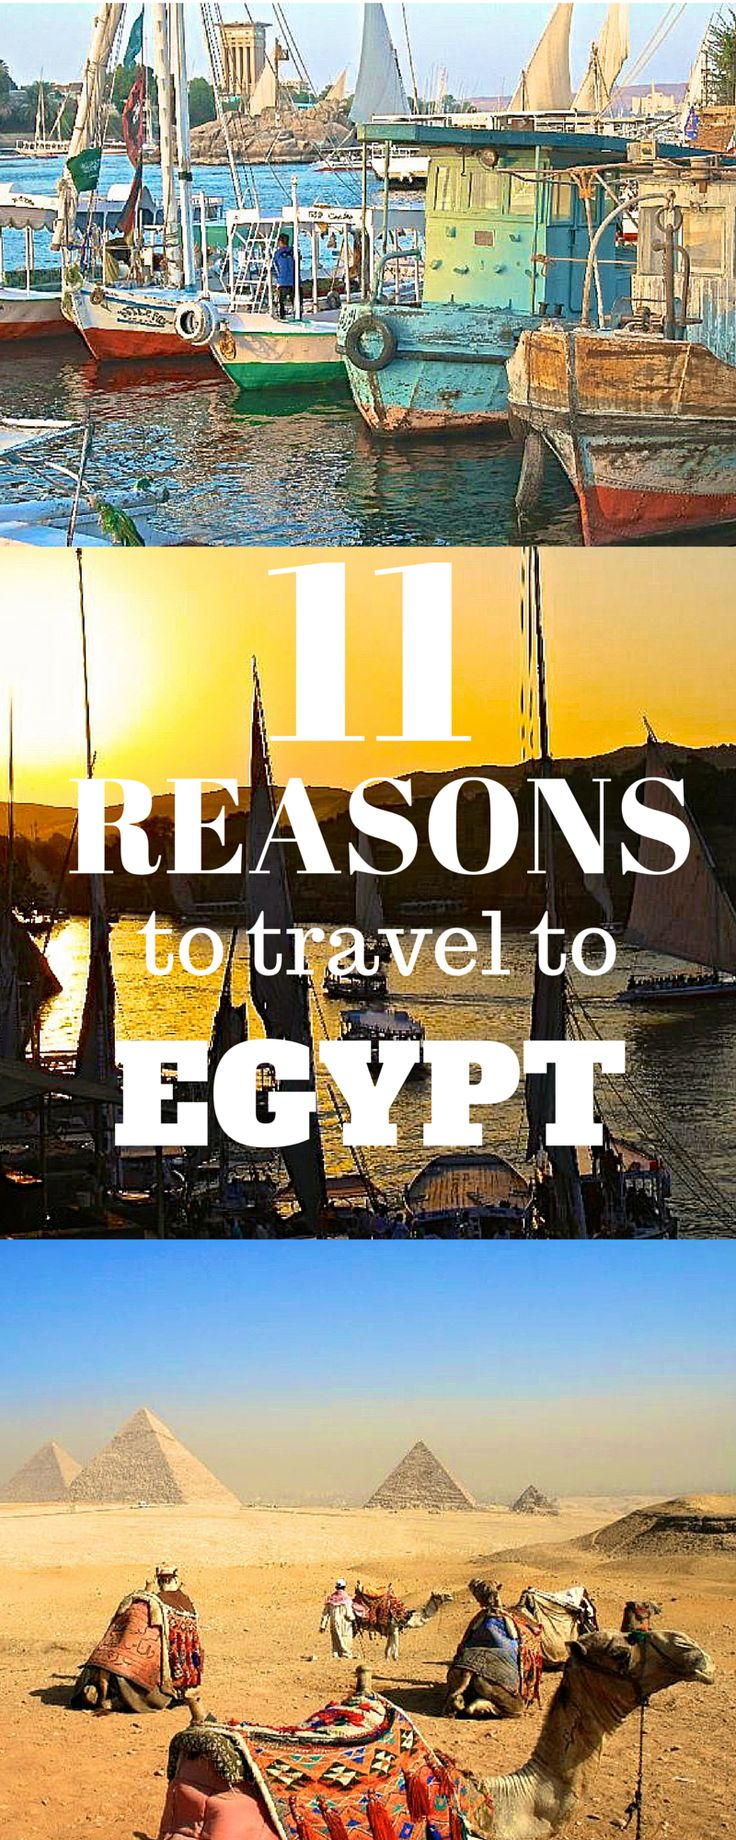 11 Reasons You Should Travel to Egypt Click the pin to read the blog post!  www.flirtingwiththeglobe.com #Egypt #Africa